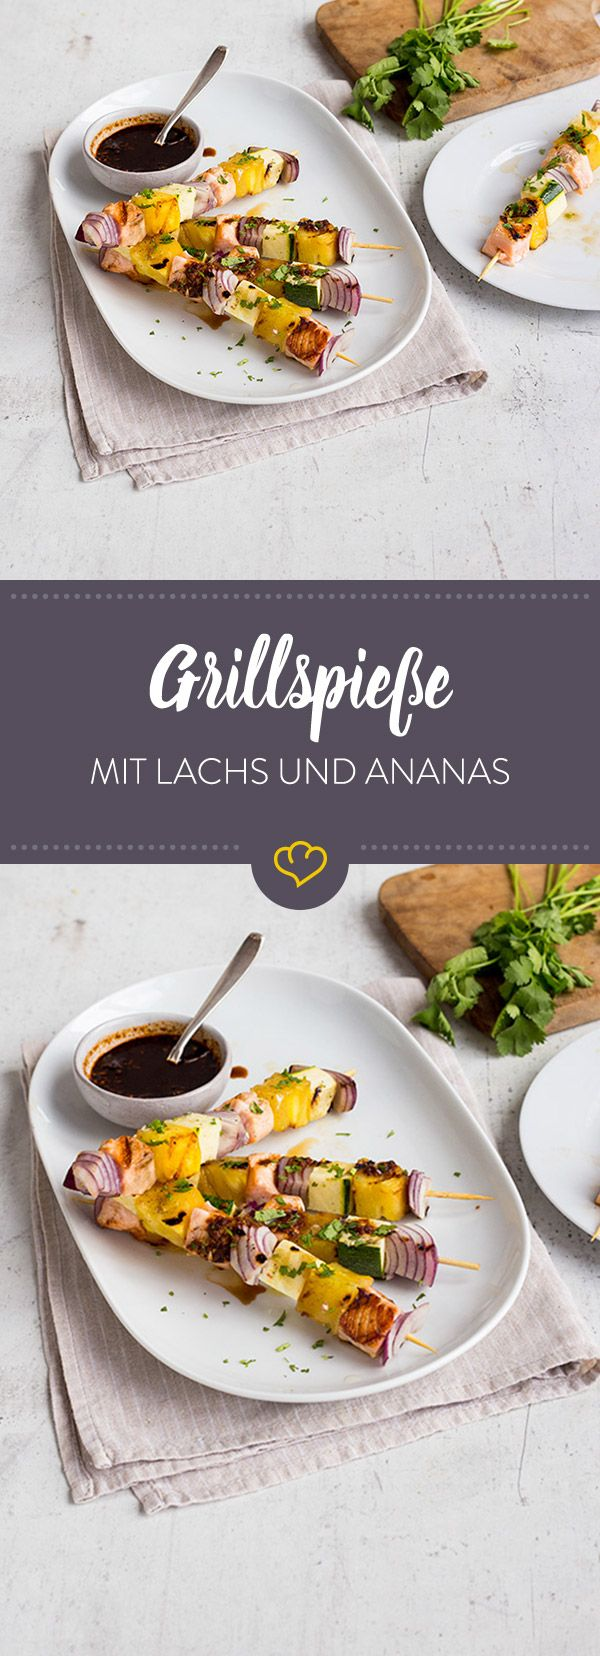 Grillspiesse Mit Lachs Und Ananas Aloha PartyTropical Party FoodsBurger RecipesSalmon